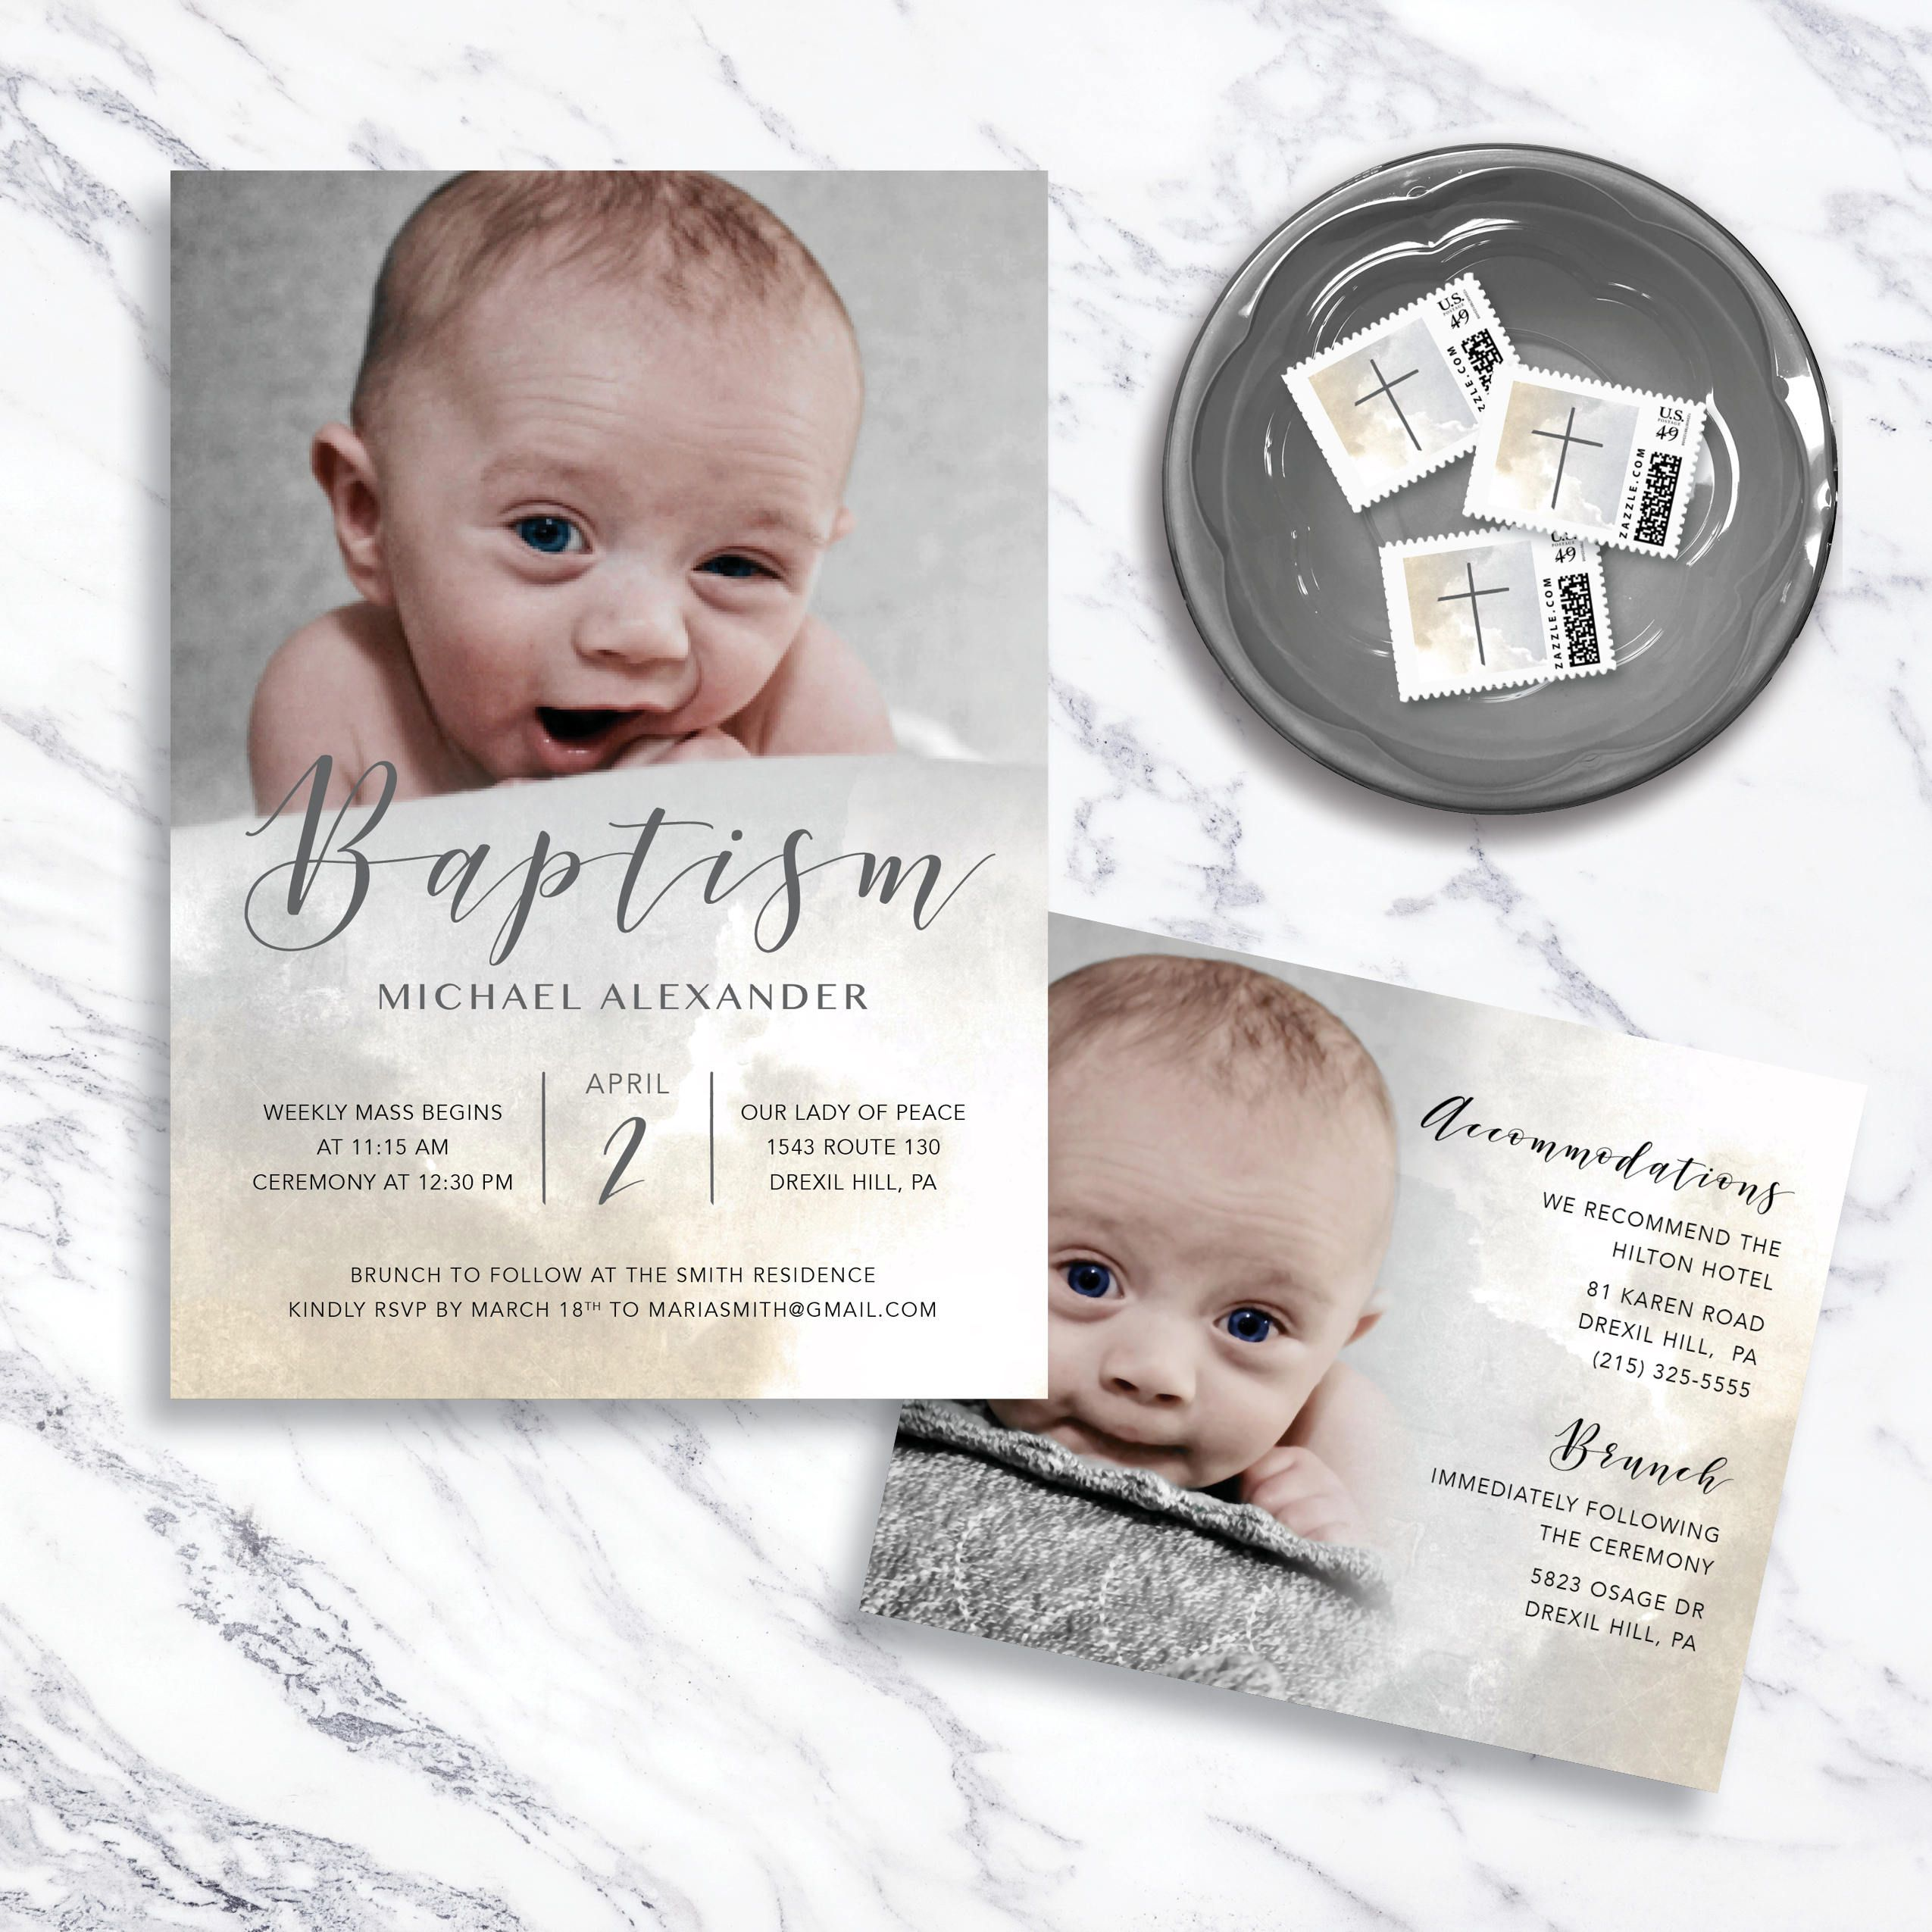 5x7 baptism invitation template baptism invitation cards 5x7 baptism invitation template baptism invitation cards christening invitation card baptism greetings stopboris Gallery